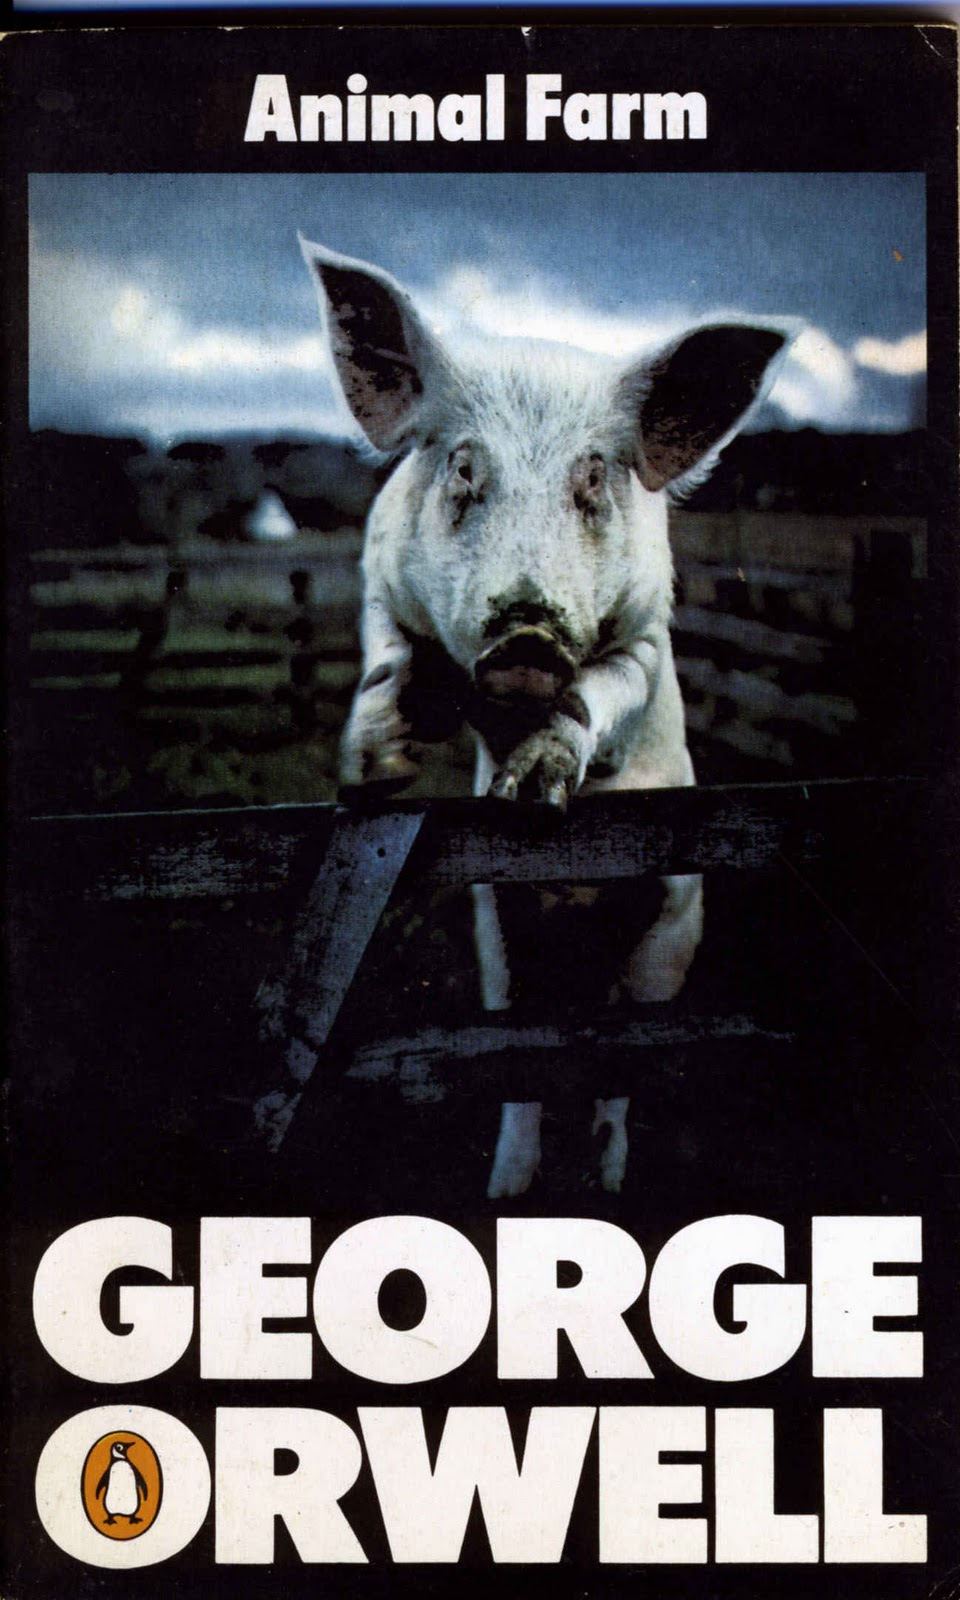 animal farm a fairy tale Animal farm is an allegorical novella by george orwell, first published in england on 17 august 1945 according to orwell, the book reflects events leading up to the russian revolution of 1917 and then on into the stalinist era of the soviet union.